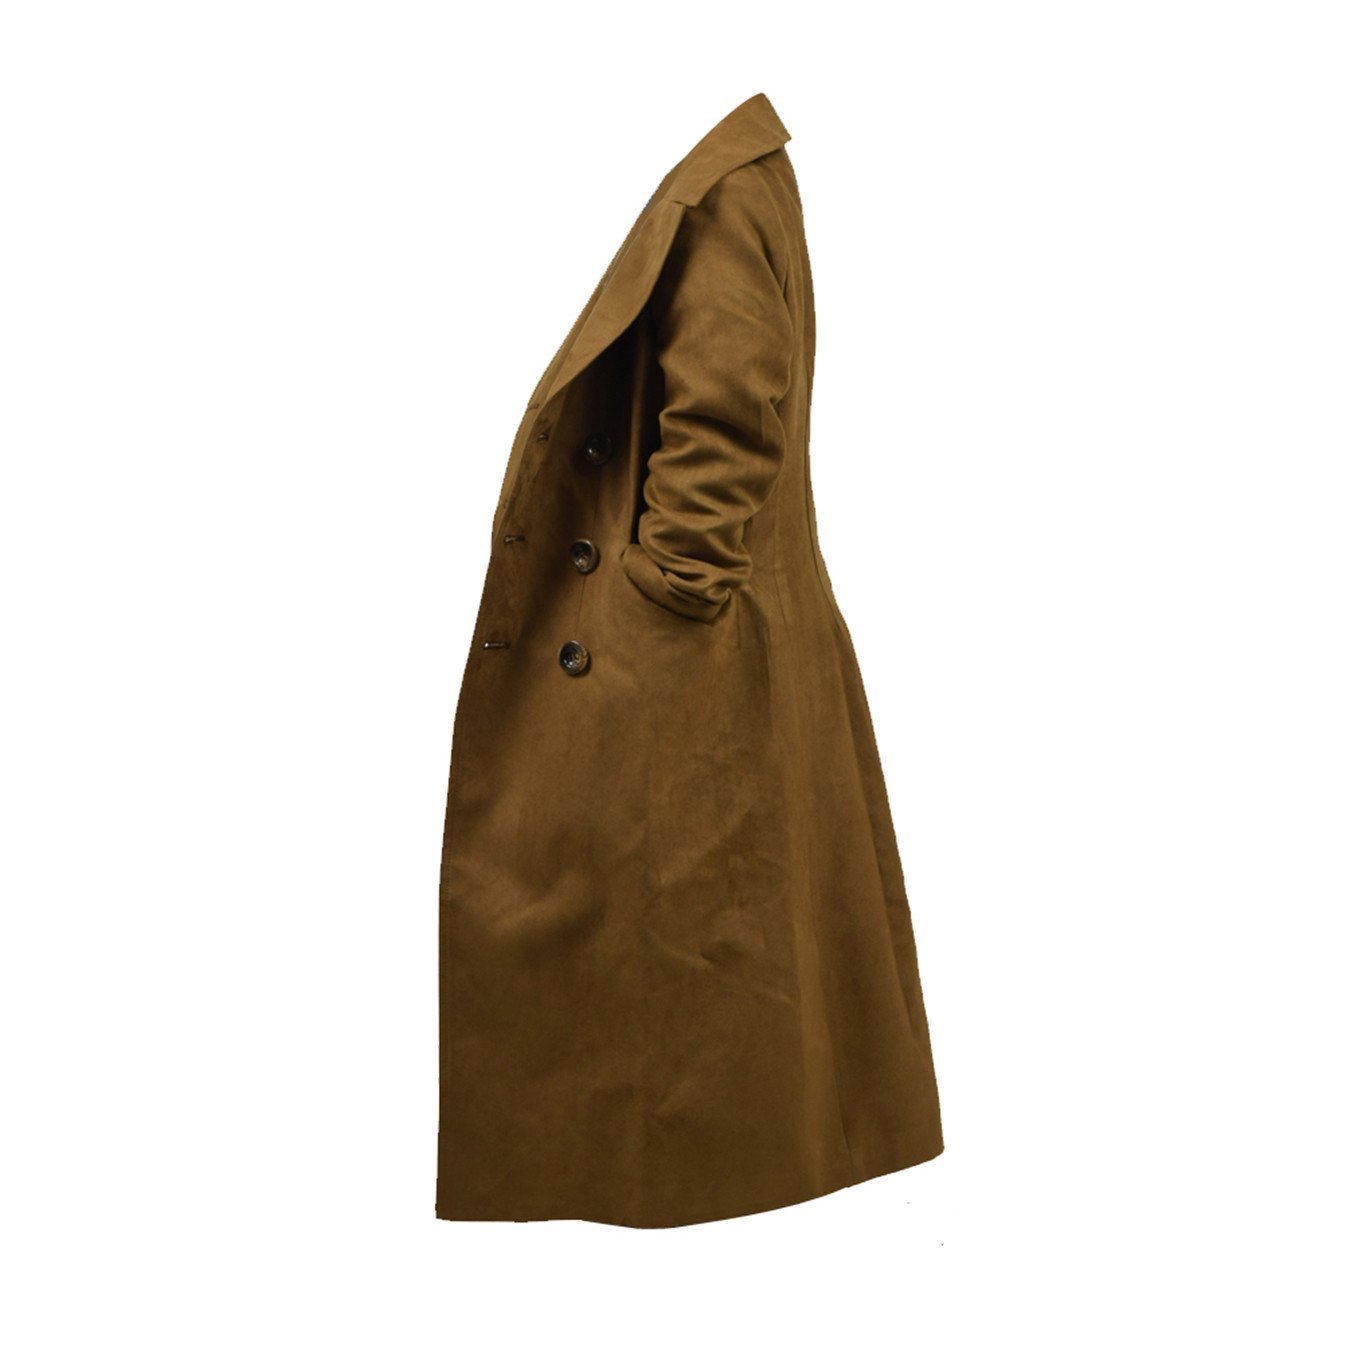 YANGGO Children's Party Halloween Outfit Cloak and Trench Coat Costume (X-Small, Brown Trench Coat) by YANGGO (Image #3)